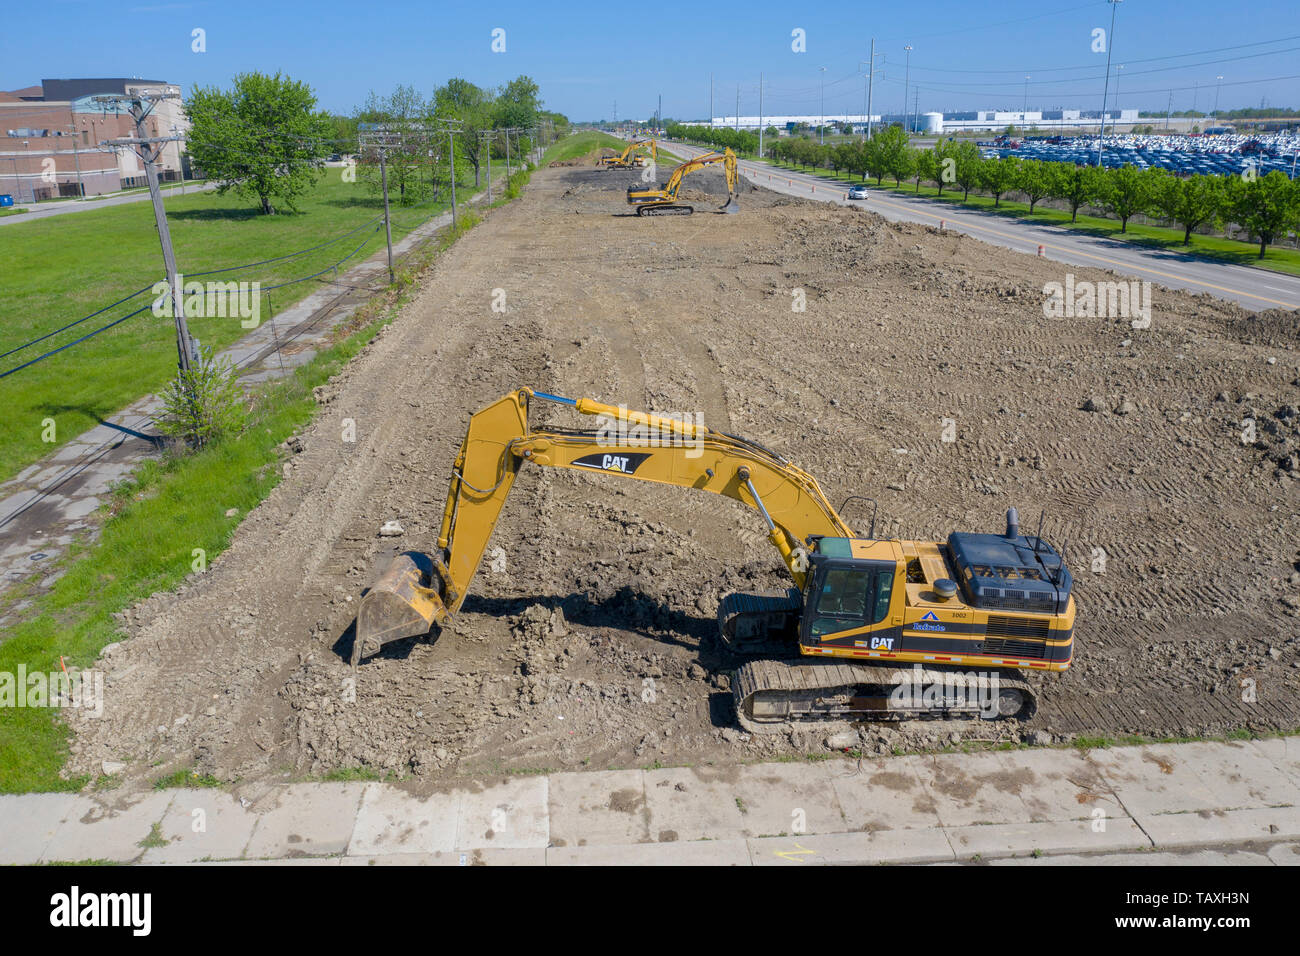 Detroit, Michigan - Early construction work for a new Fiat Chrysler assembly plant. The plant will be the first auto assembly plant built in Detroit i - Stock Image